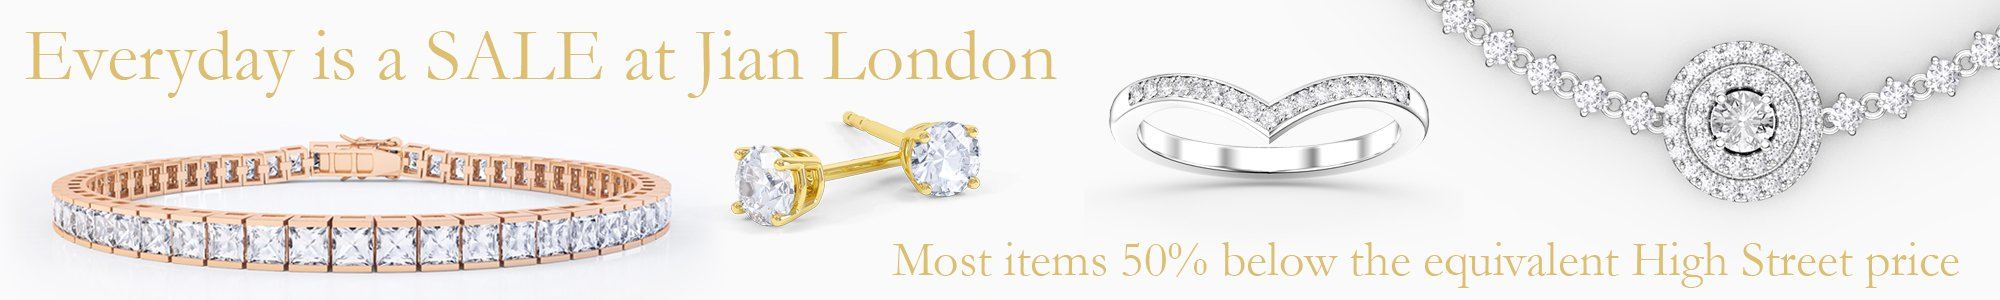 Everyday is a SALE at Jian London - Most items 50% below High Street prices